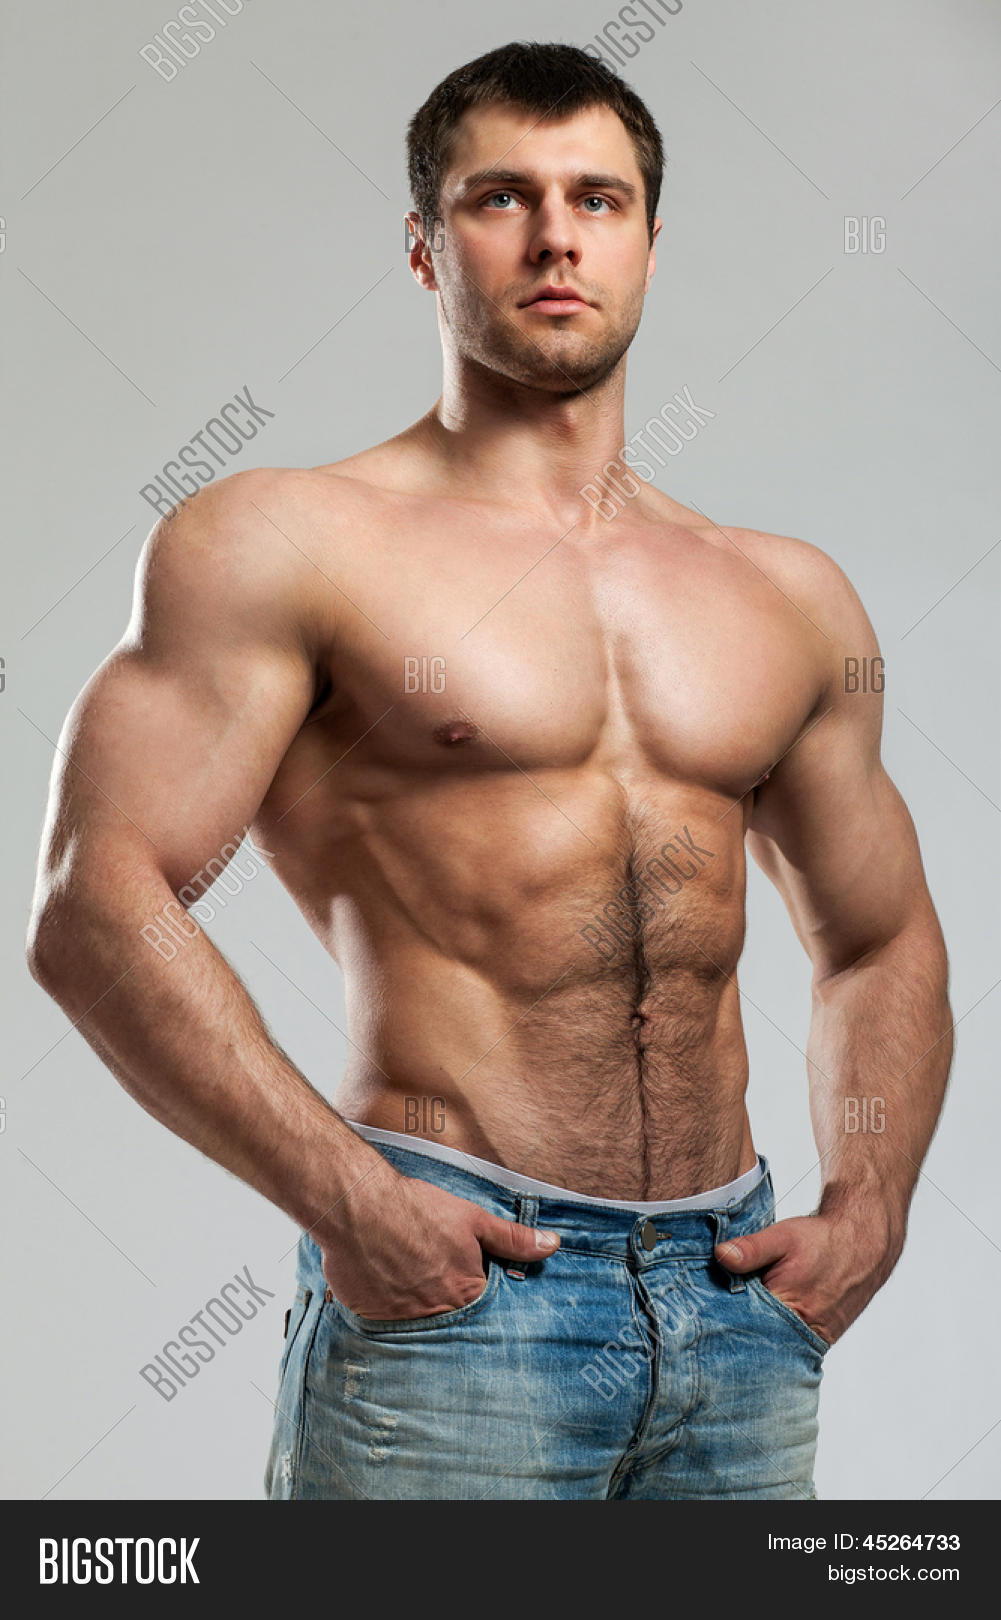 free muscular gay images